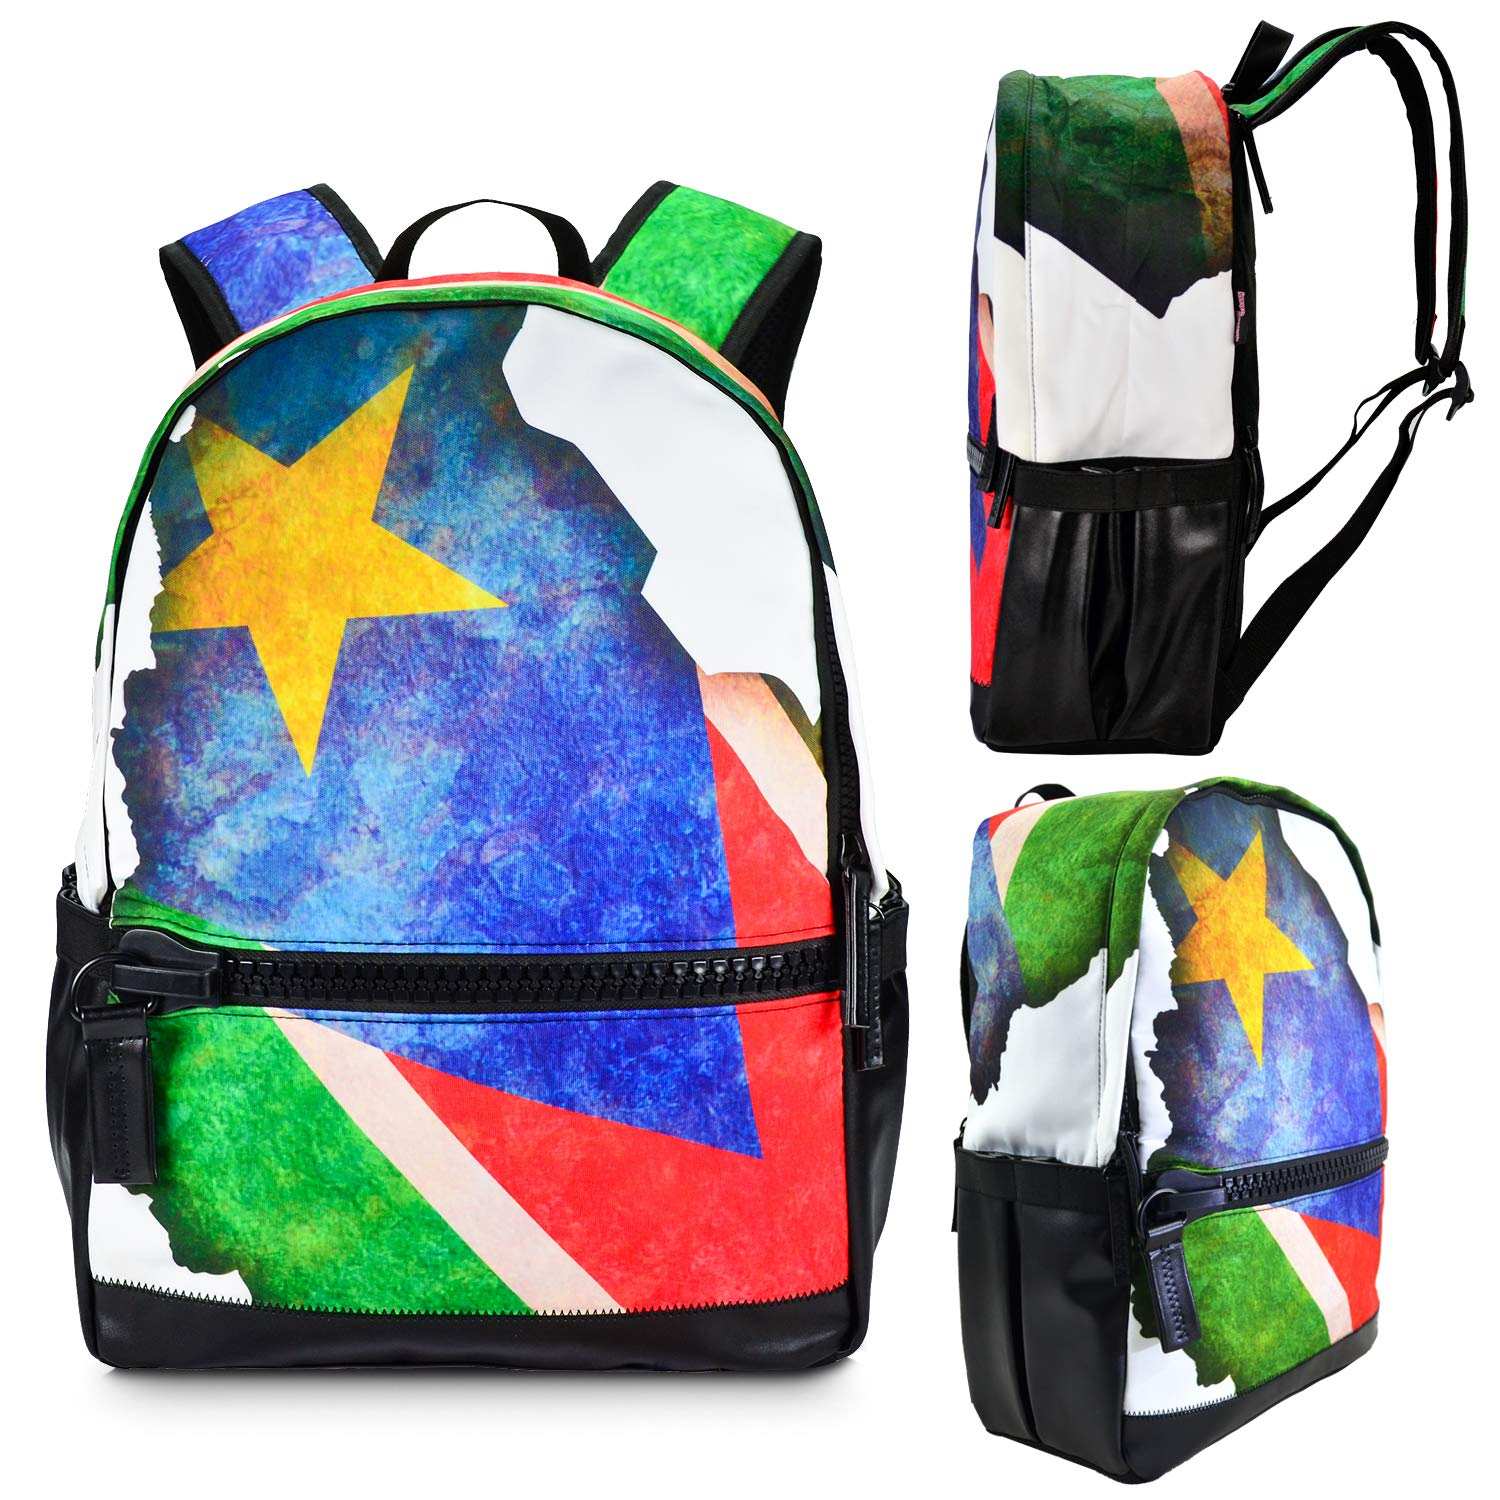 e83f1483632 Amazon.com  Bistar Galaxy Casual Daypack Backpacks